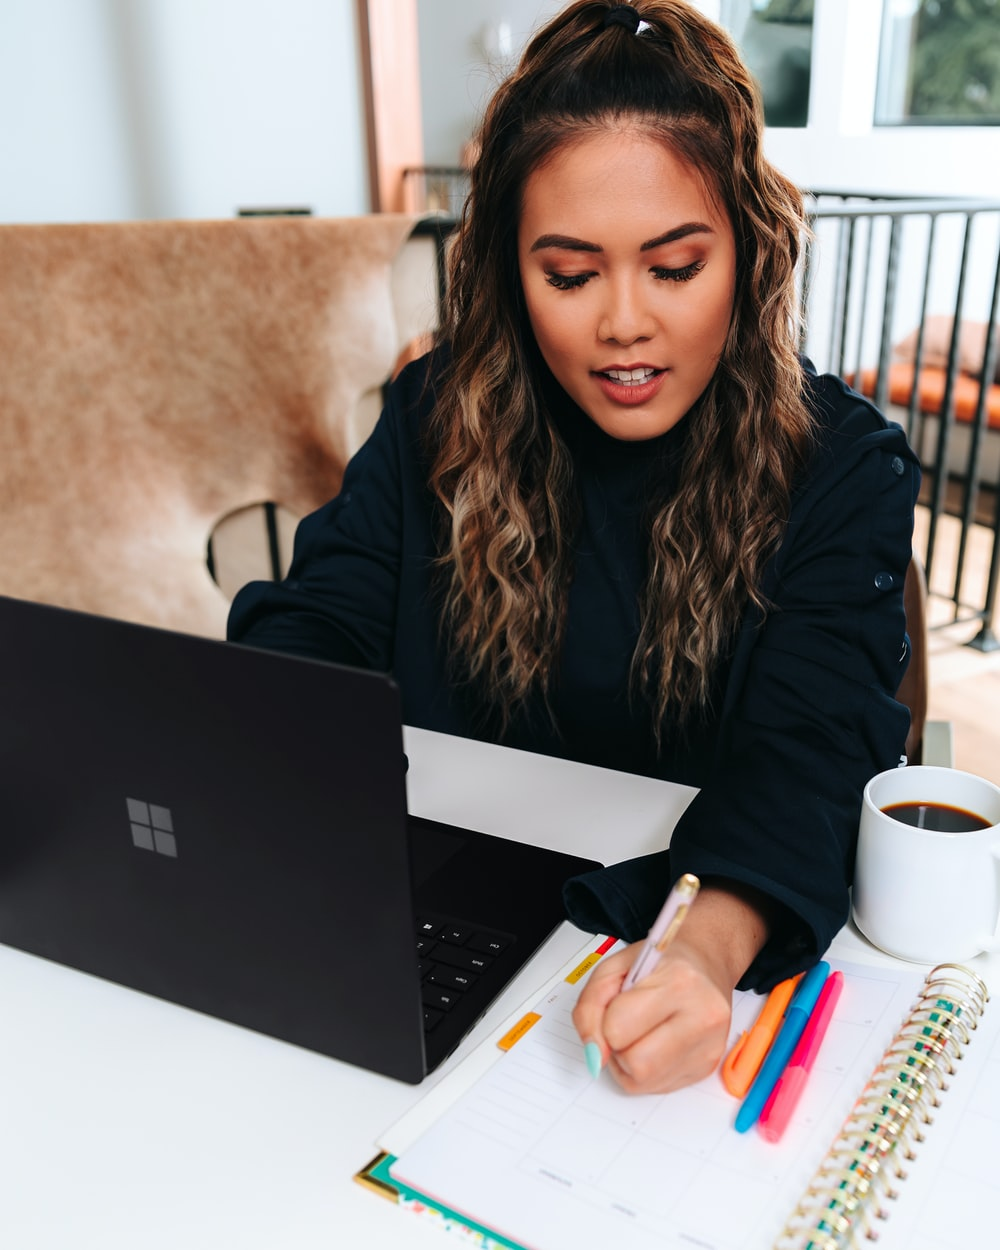 woman in black sweater with a black microsoft surface laptop on a table